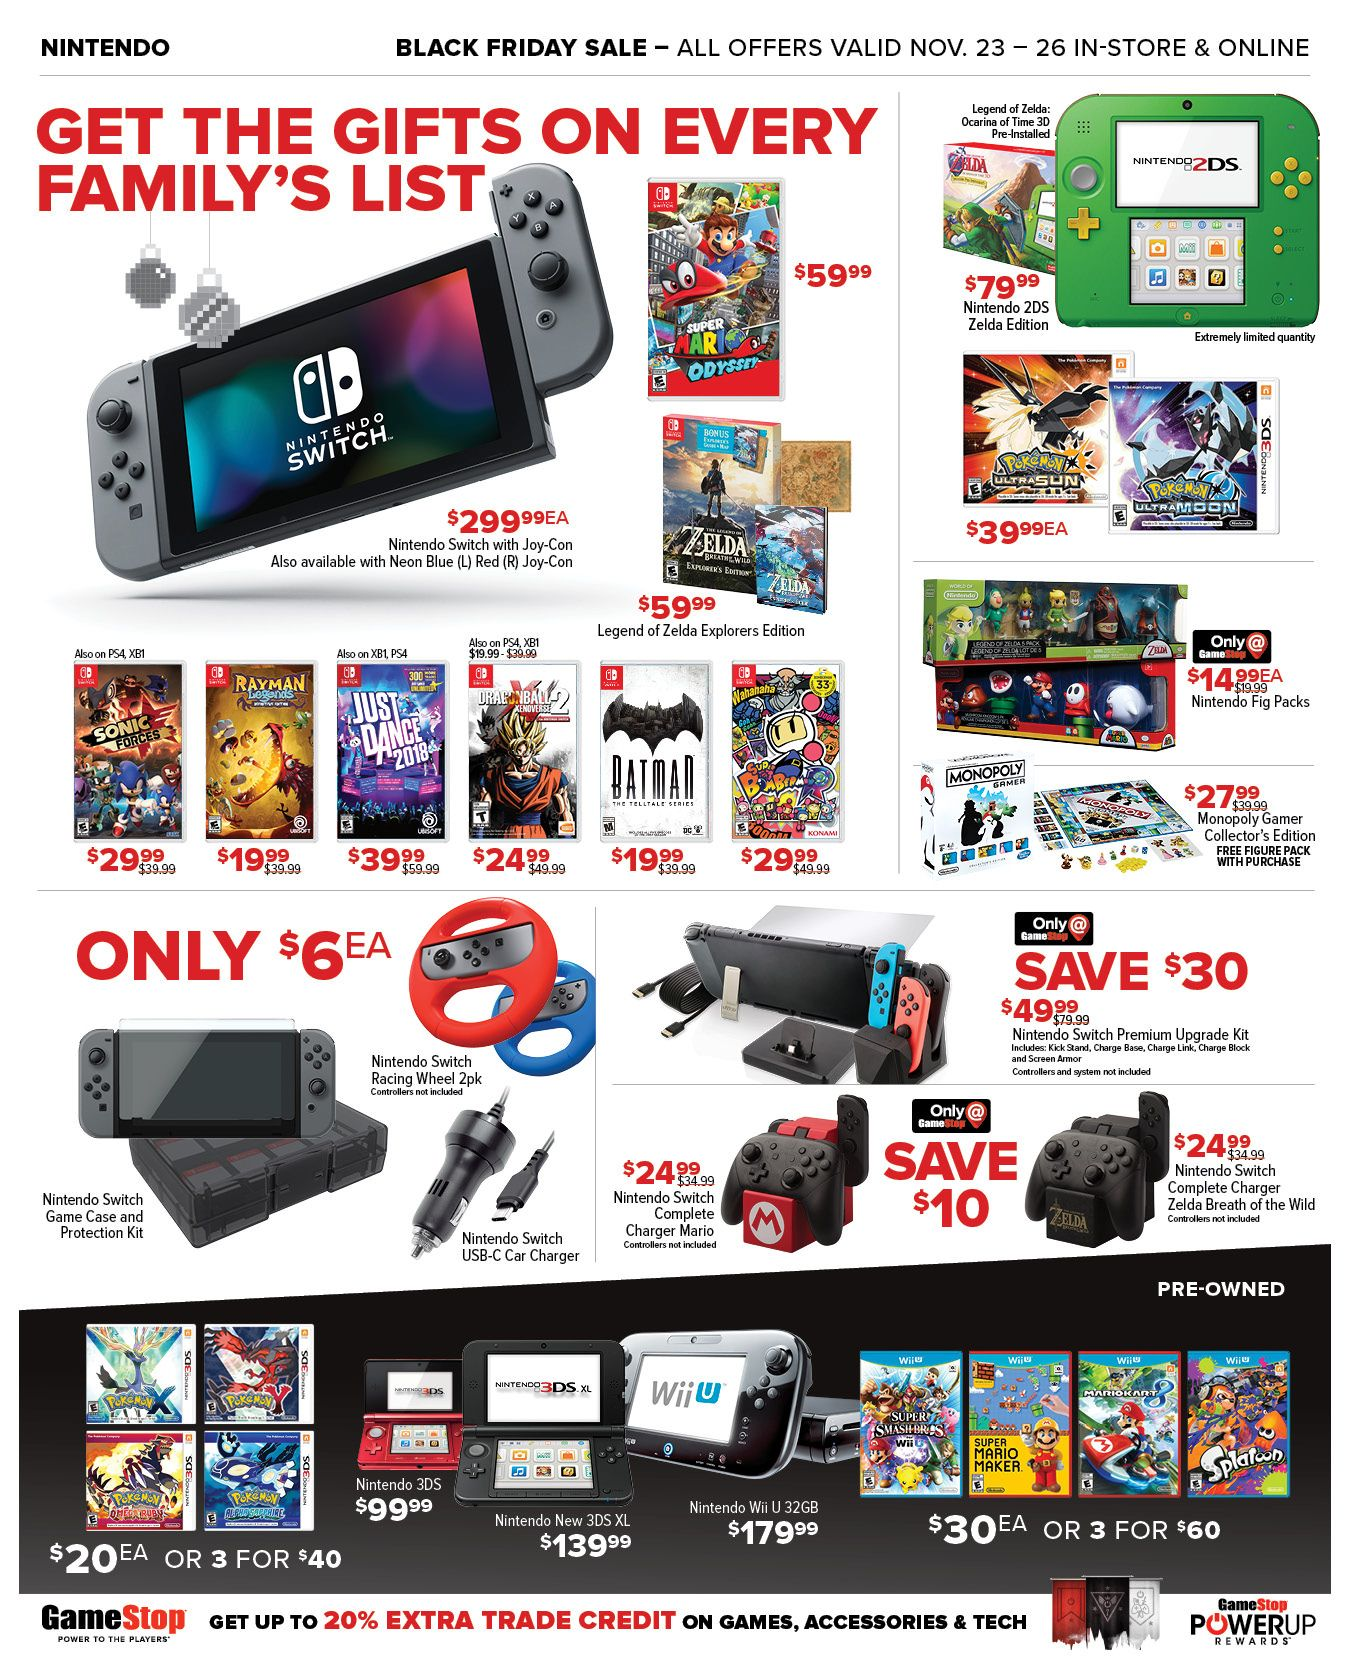 Nintendo Switch Black Friday 2020 Deals Black Friday Sale Offers Black Friday Games To Play Now Nintendo